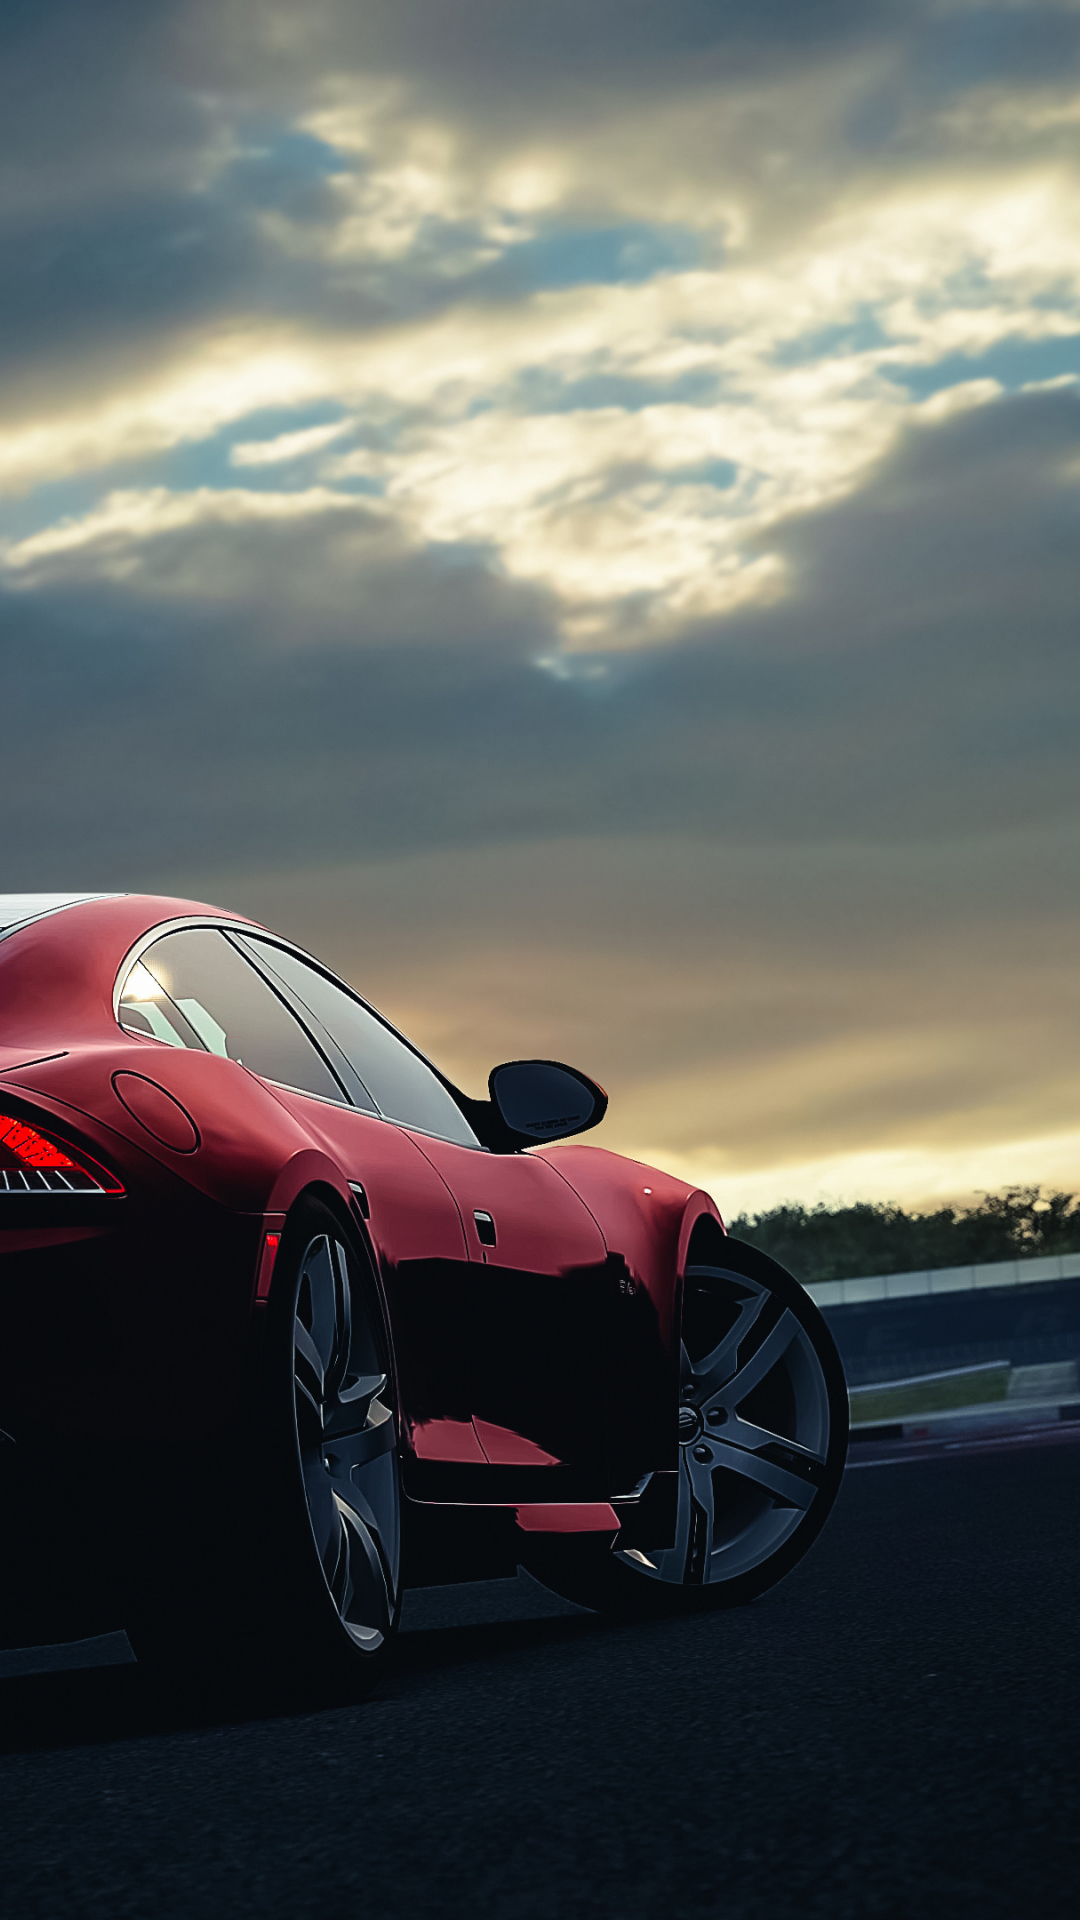 4k Ultra Hd Car Wallpapers For Mobile